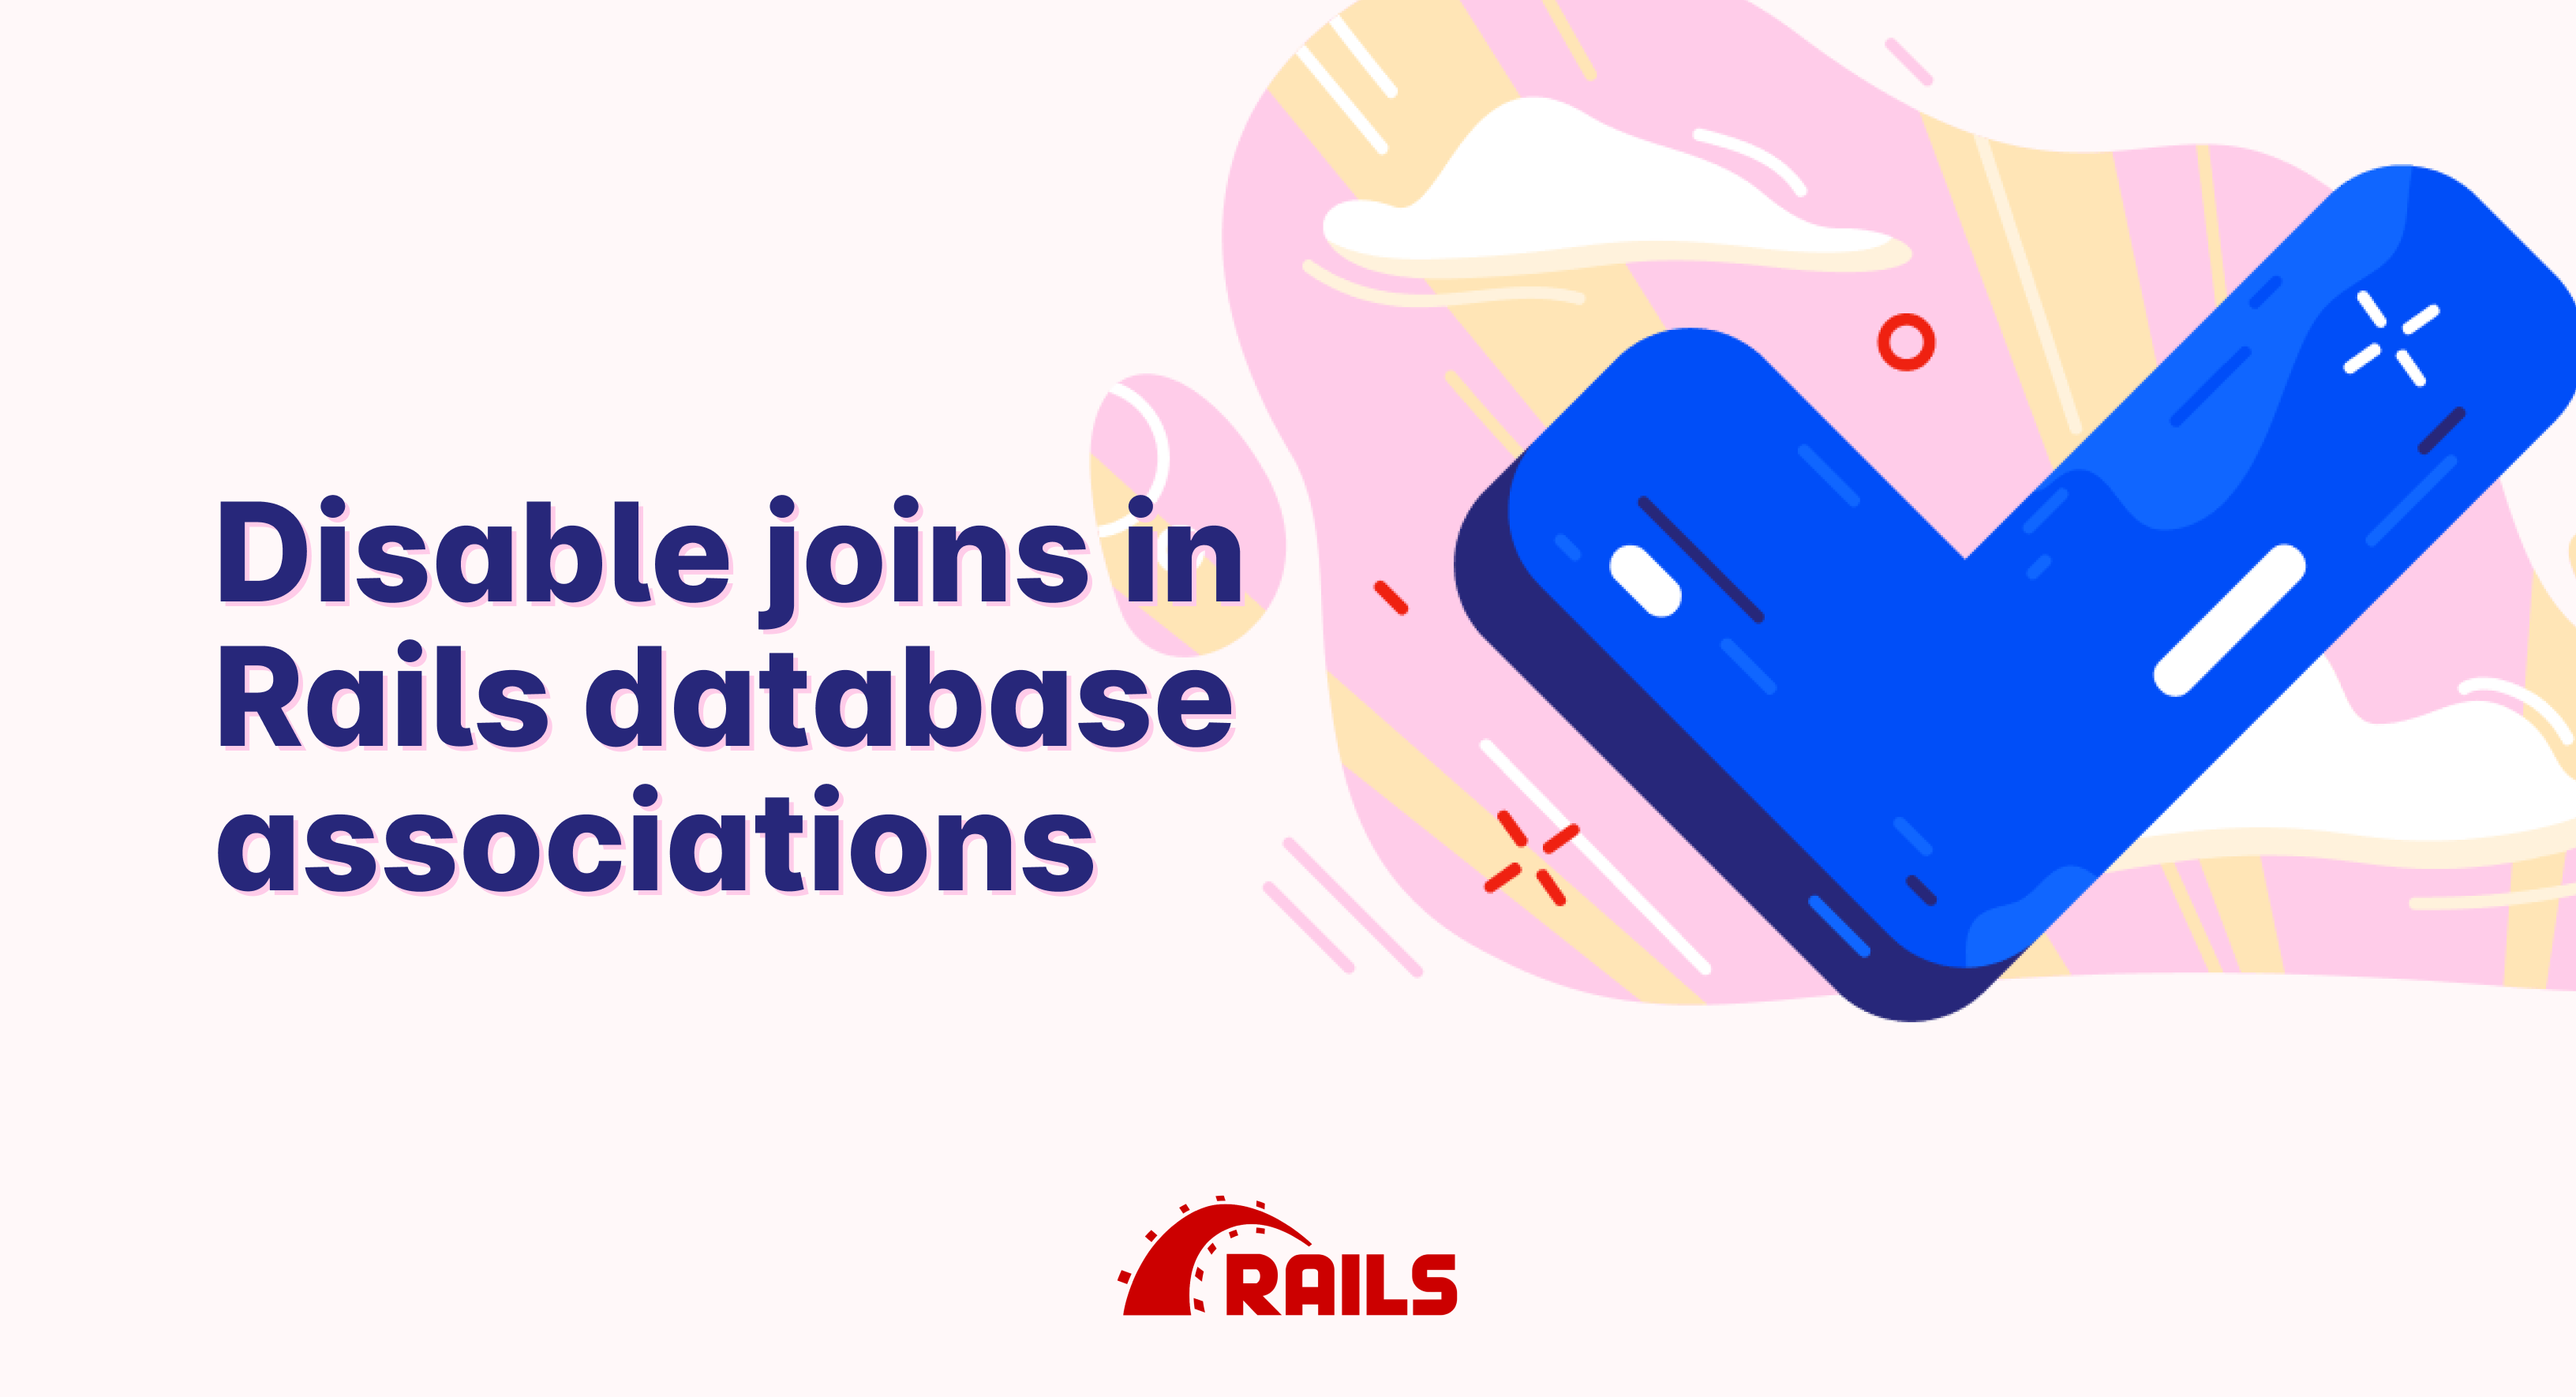 Now you can disable joins in Rails database associations